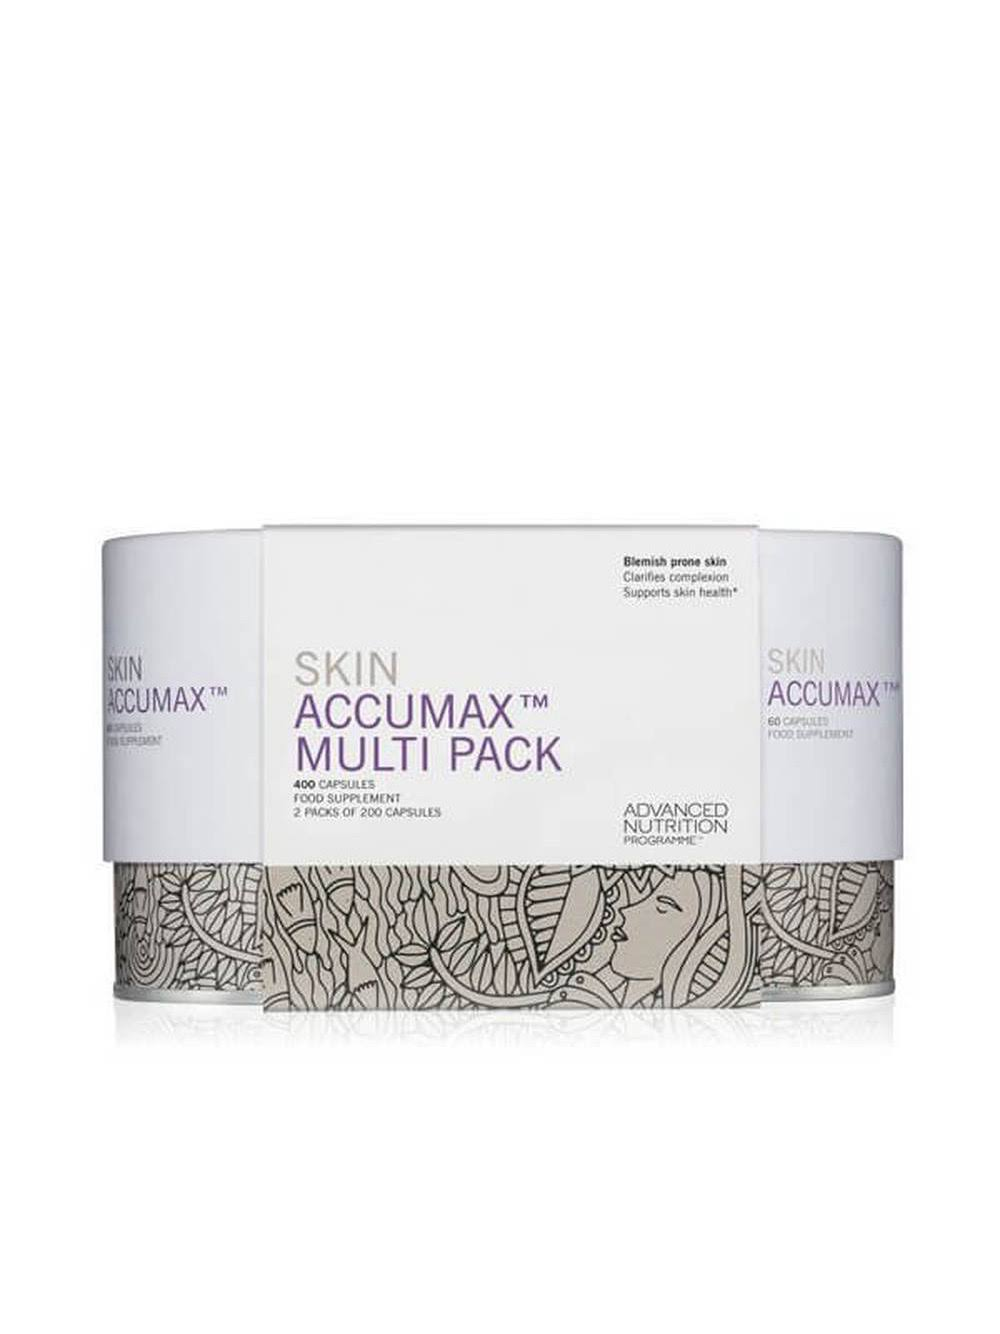 Advanced Nutrition Programme Skin Accumax 400 Capsules